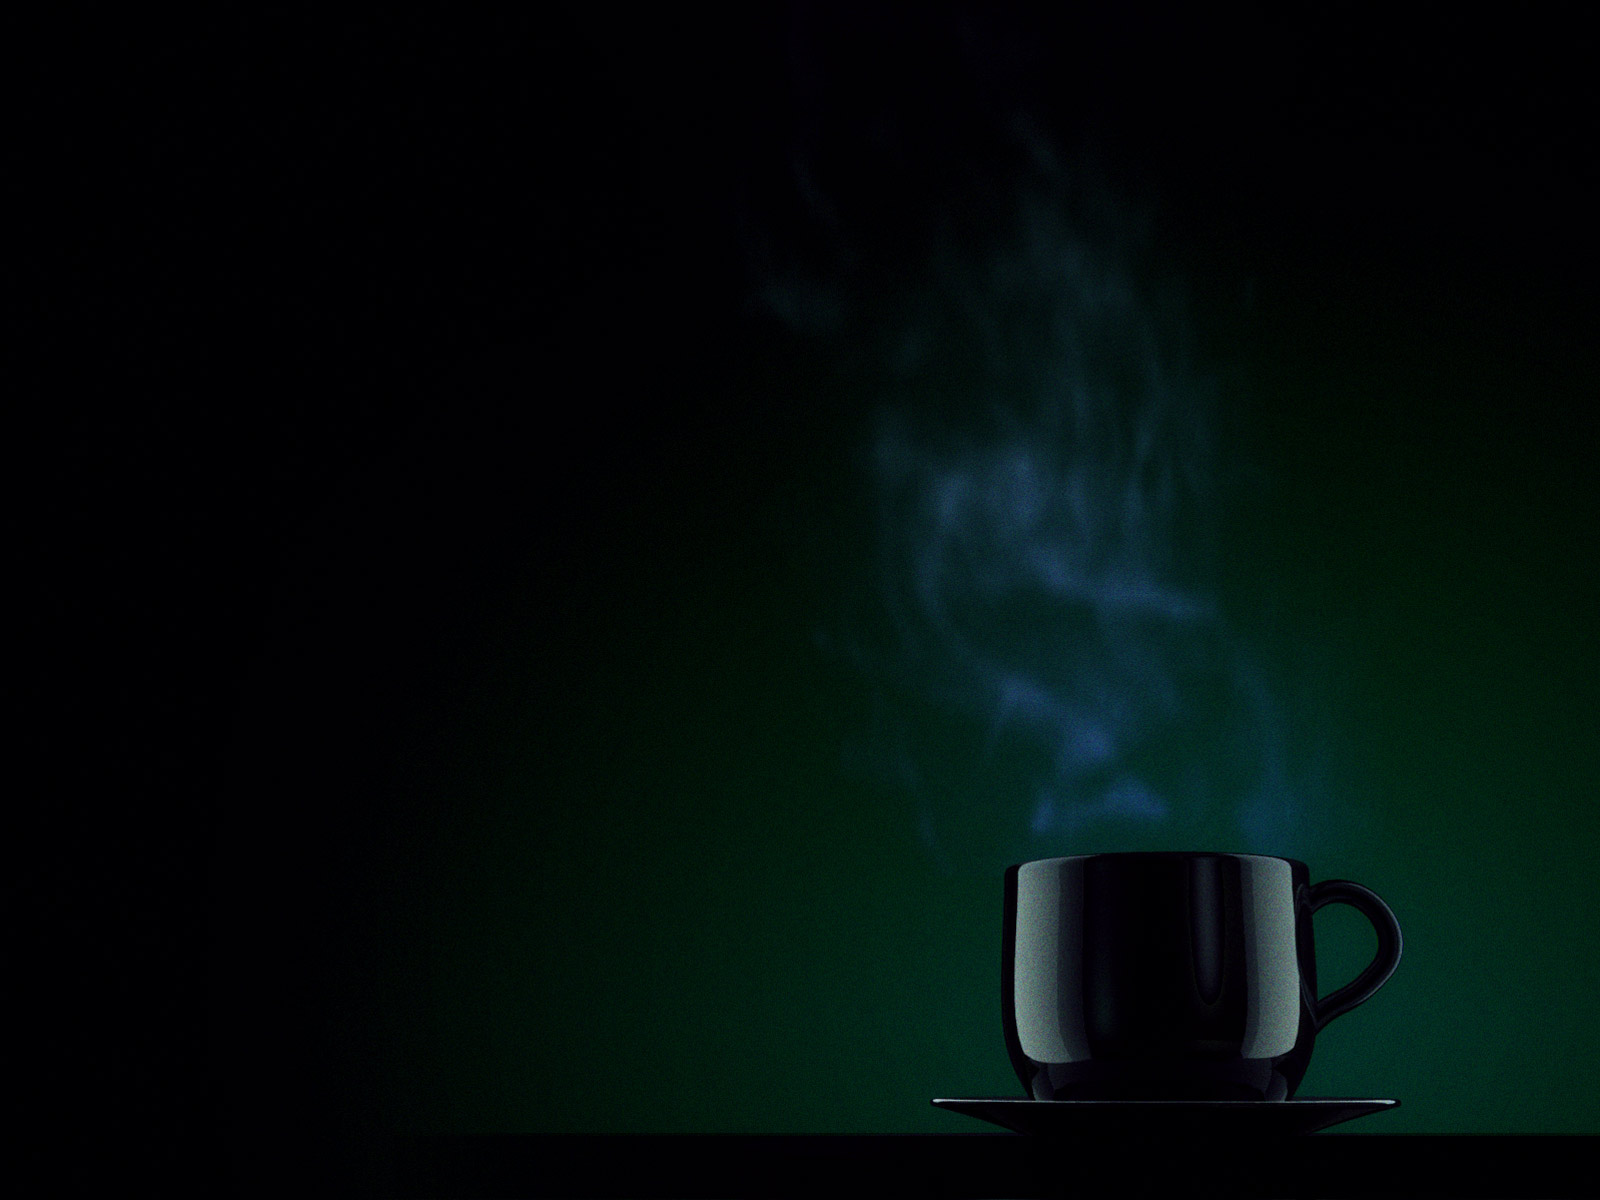 Coffee Wallpaper By Blakk On Deviantart